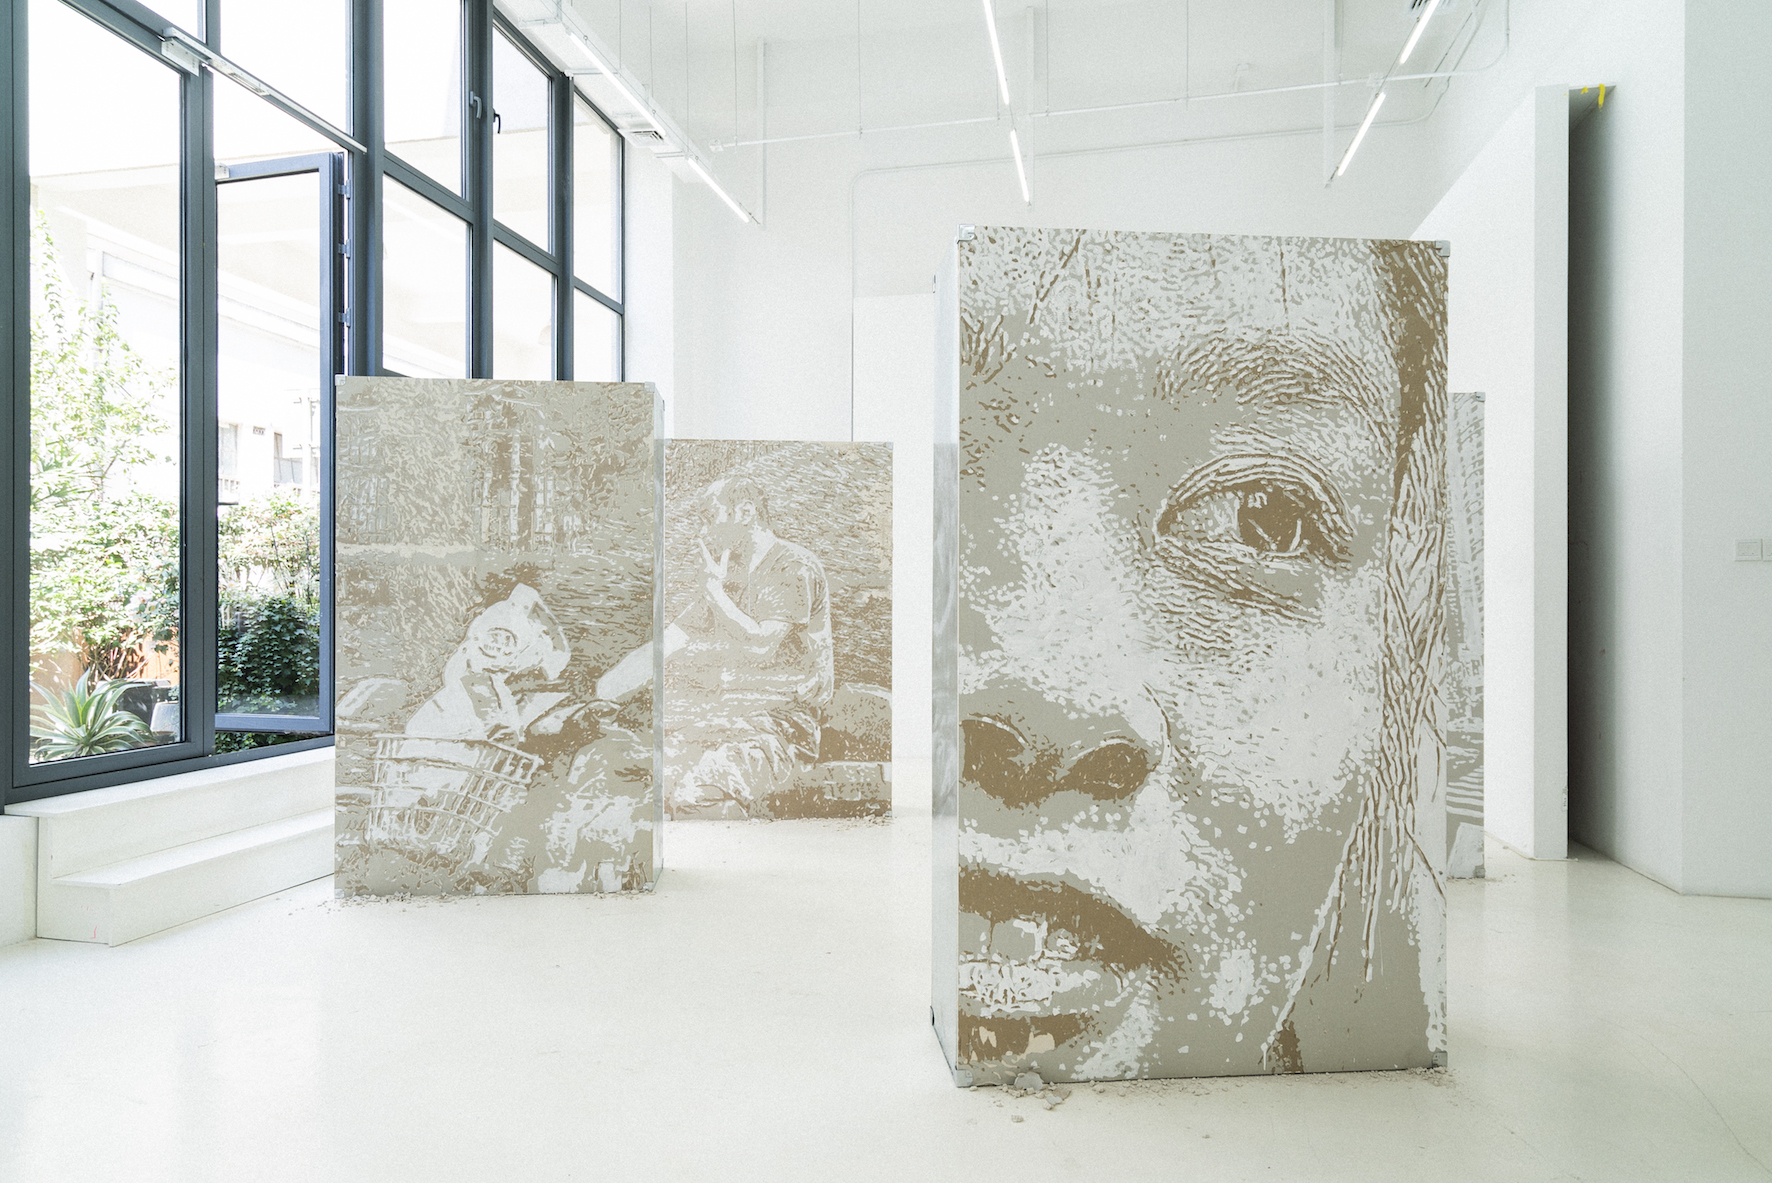 Arte Visual Brasil Vhils Exhibitions